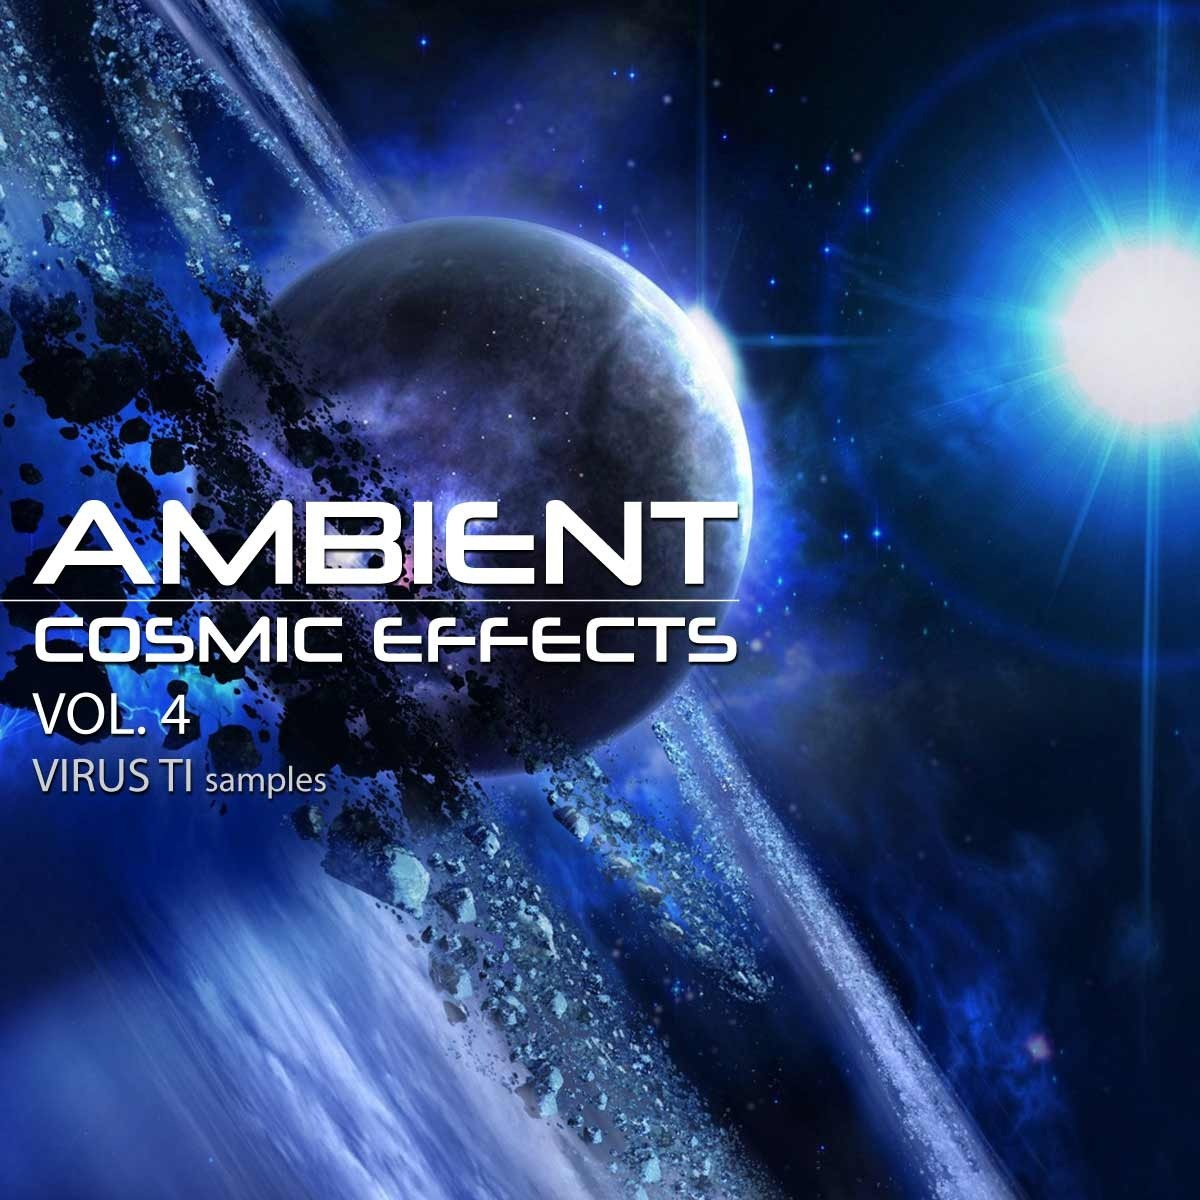 Ambient Cosmic Effects Vol 4